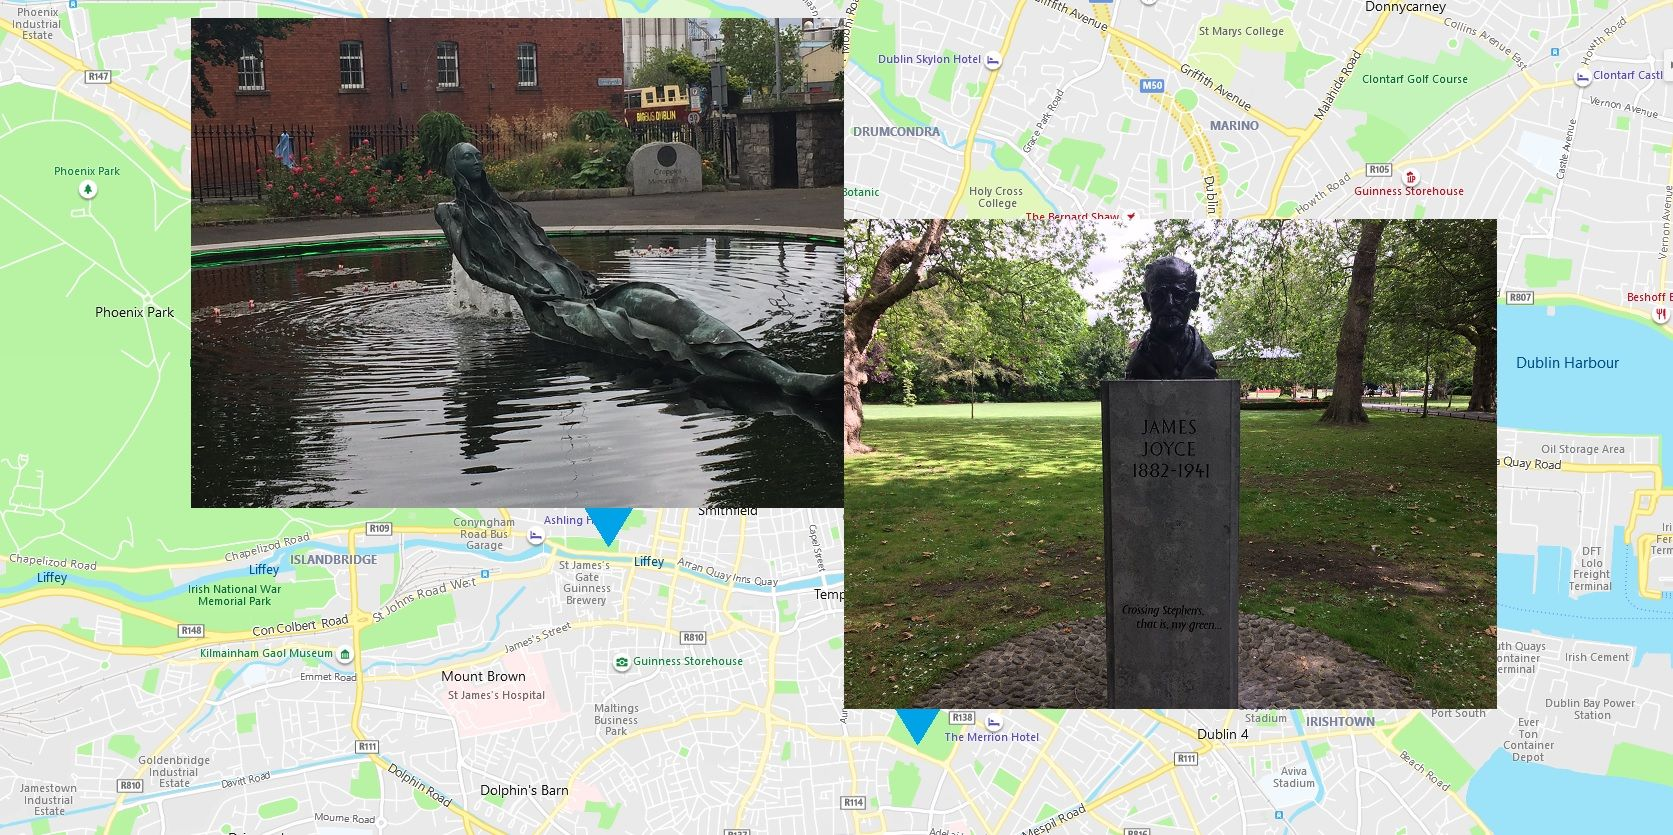 Anna Livia and James Joyce on opposing sides of the River Liffey, but together in celebratory wanderings as contained within the one Dublin